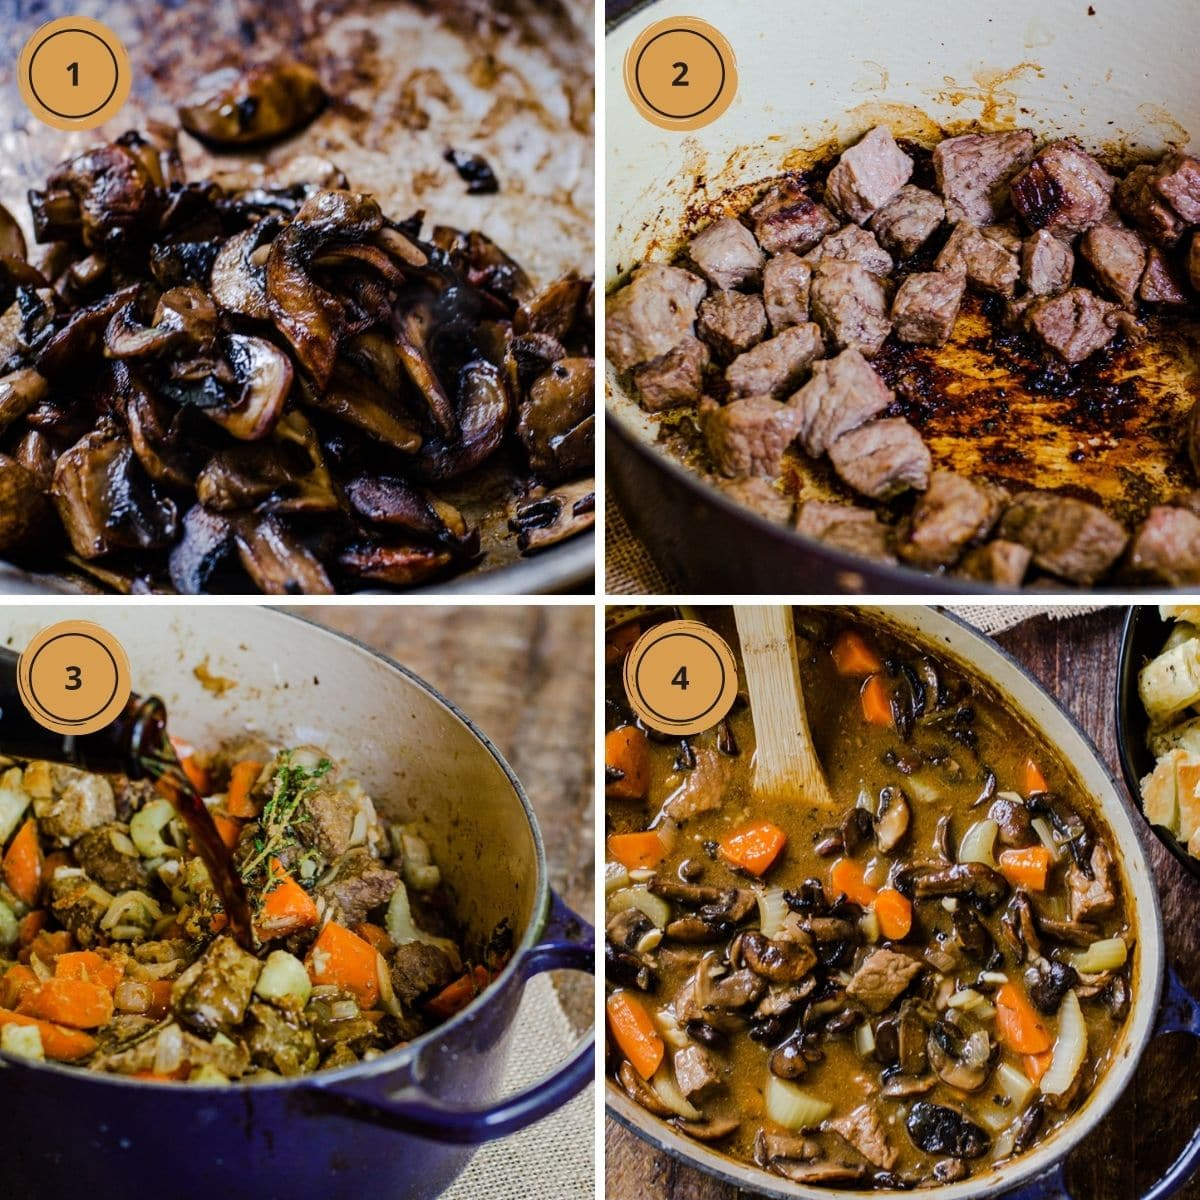 Four steps to making steak and ale soup.